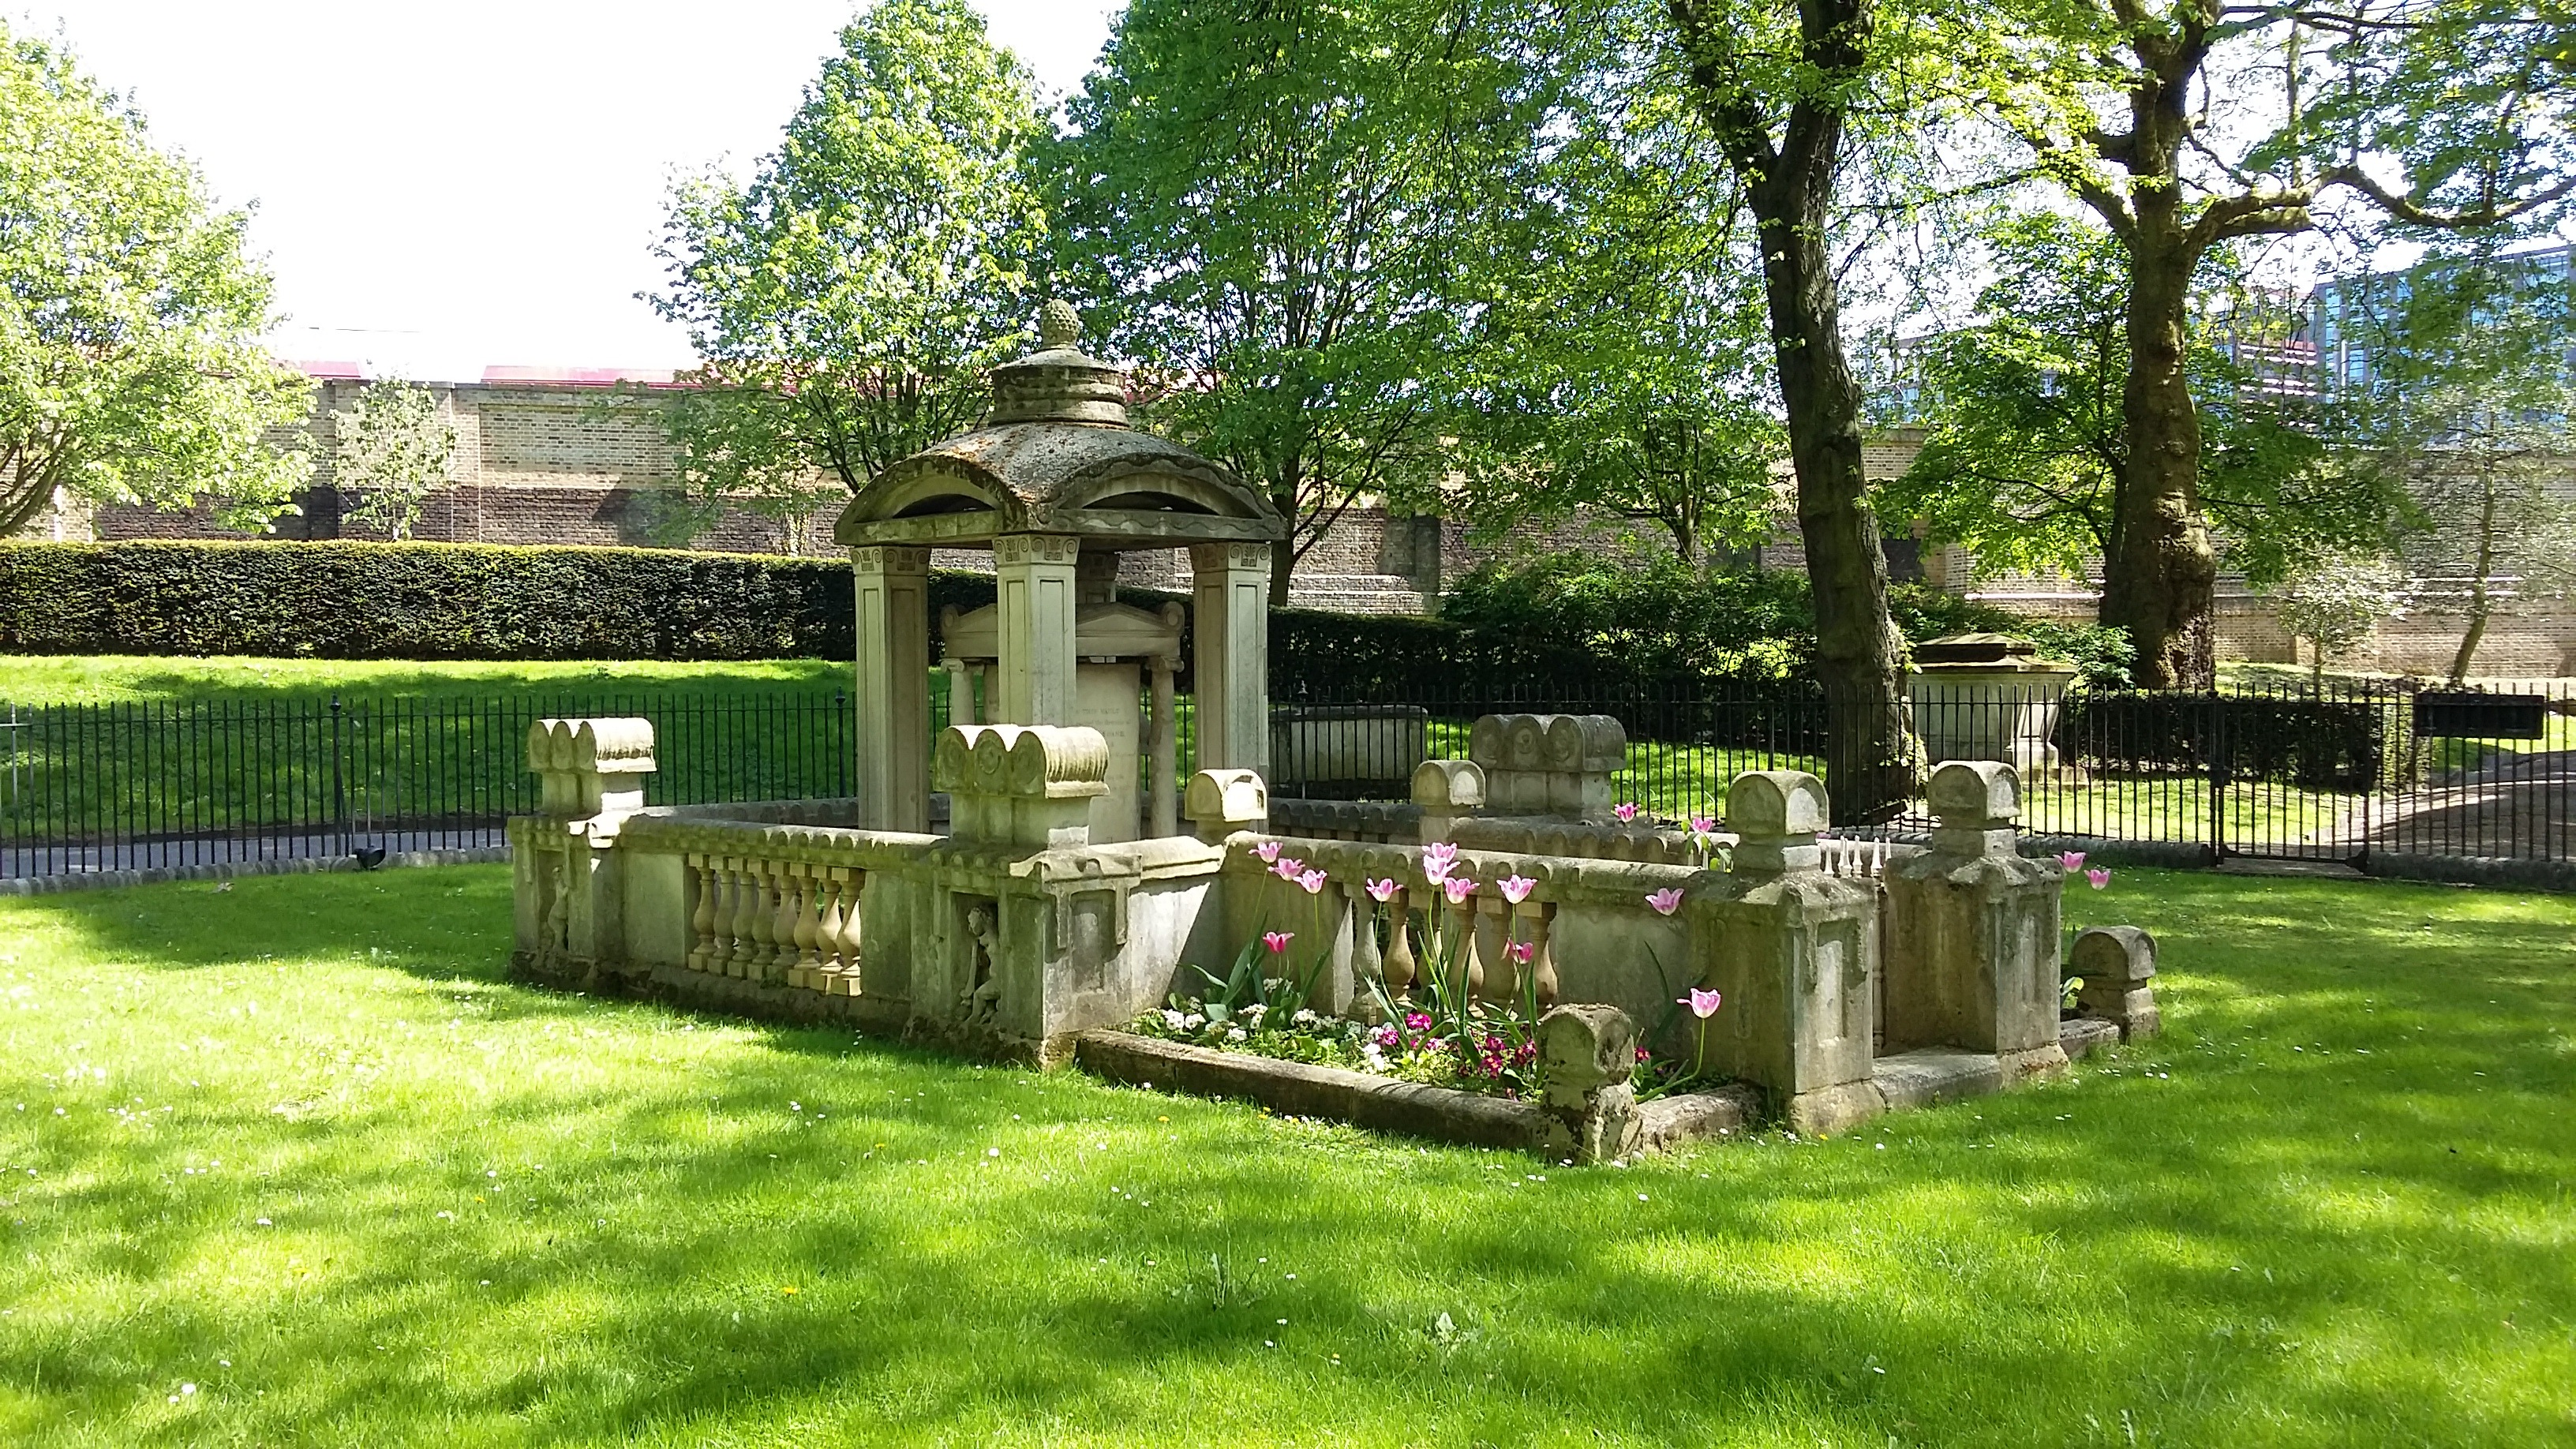 Sir John Soane's tomb